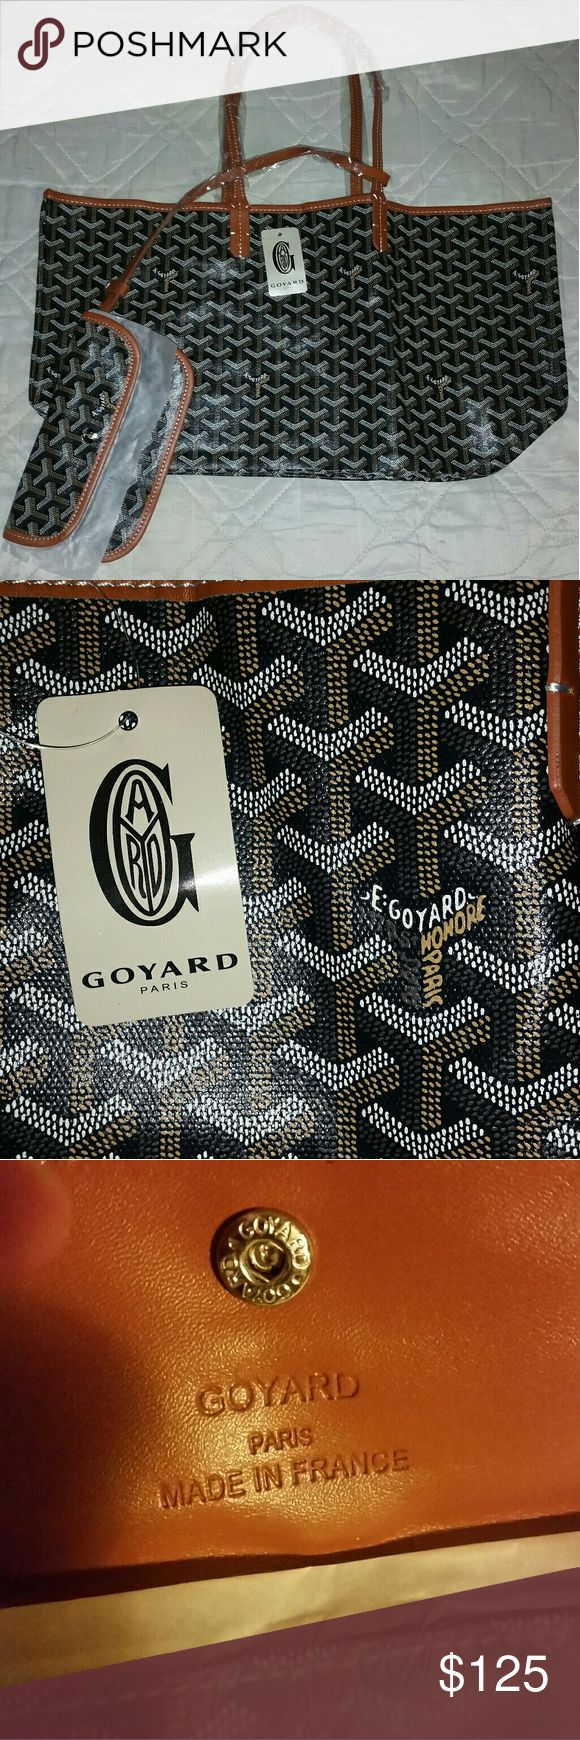 Tote bag and wallet Price says it all. Good quality leather and font is on point. Comes with original dustbag and tag. Goyard Bags Totes